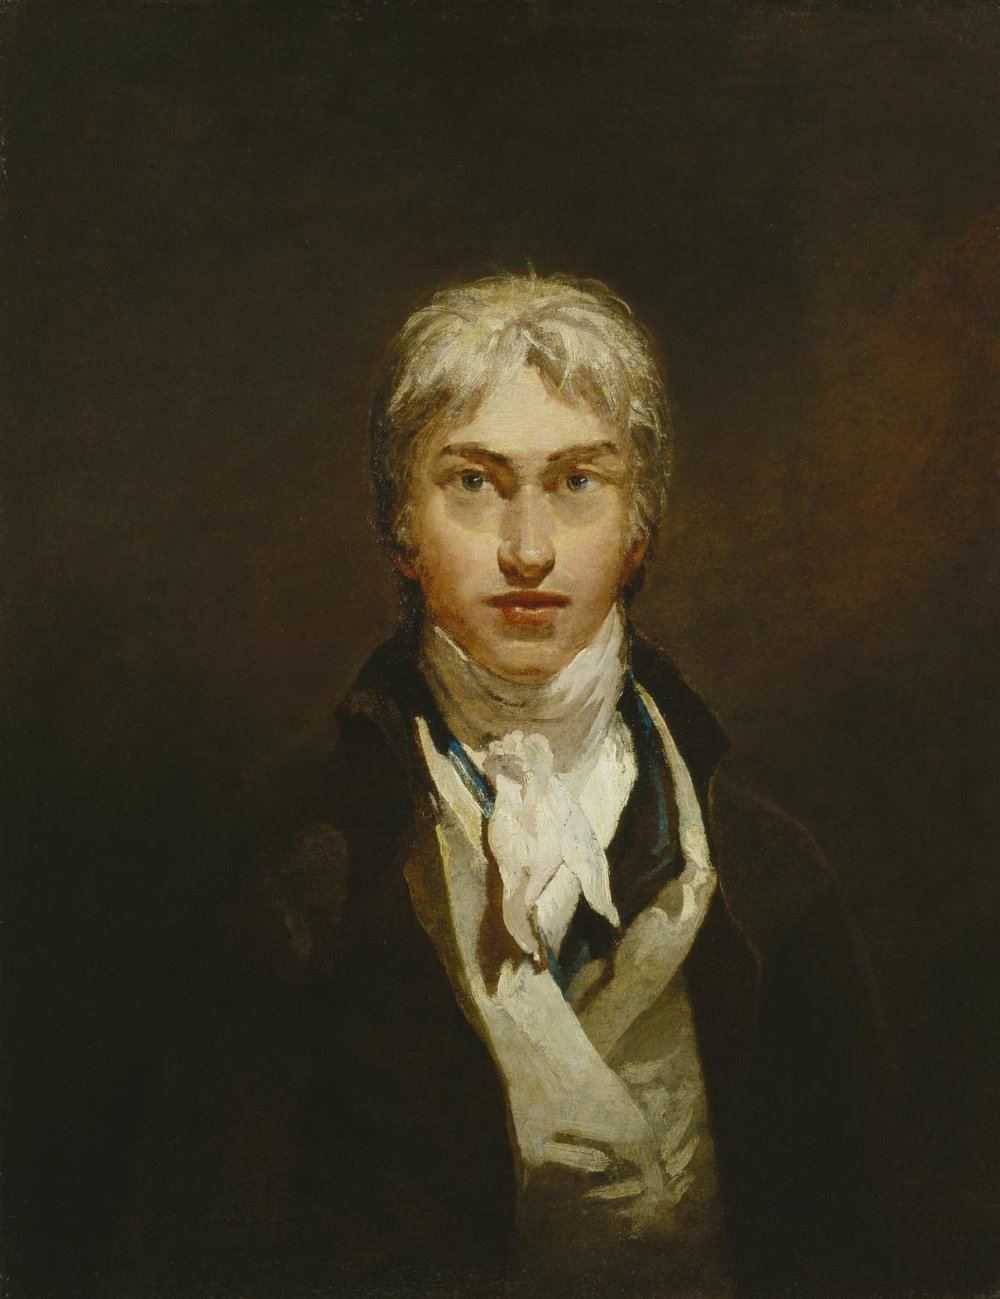 Joseph Mallord William Turner, Self-Portrait, c. 1799